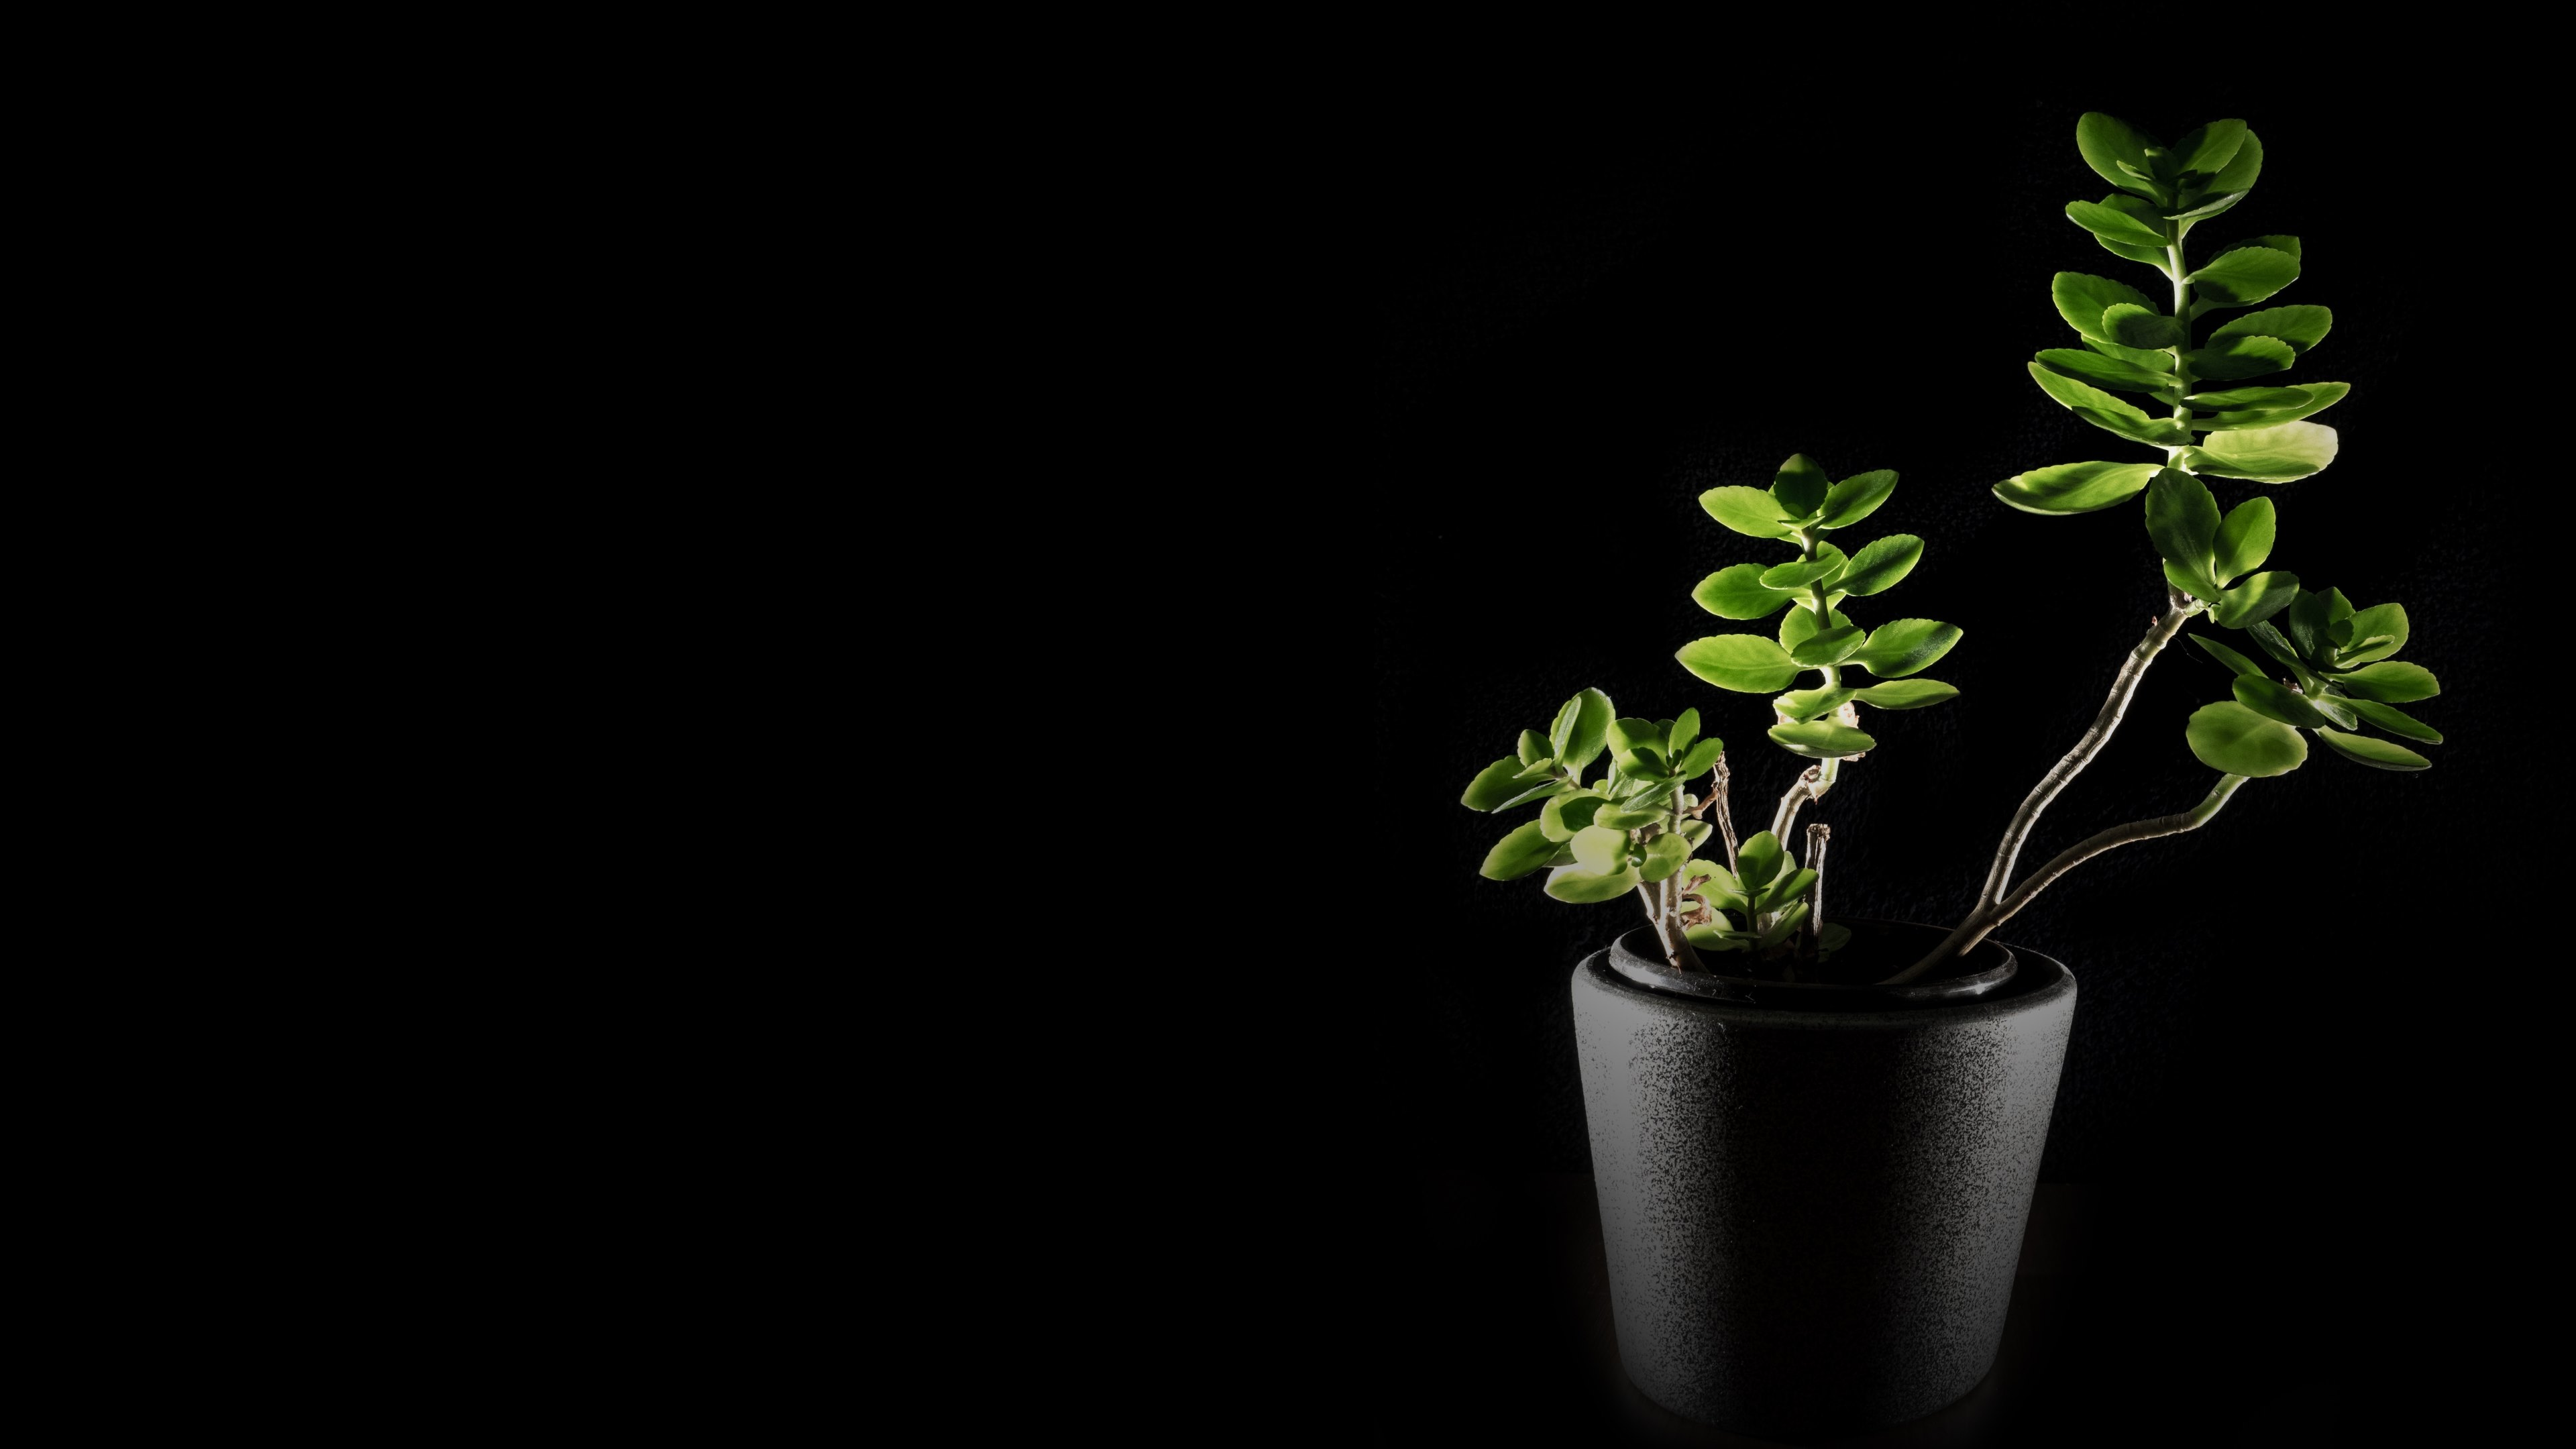 Black Plant Windows 10 Wallpaper Wallpapers Uhd 3840x2160 Wallpapers